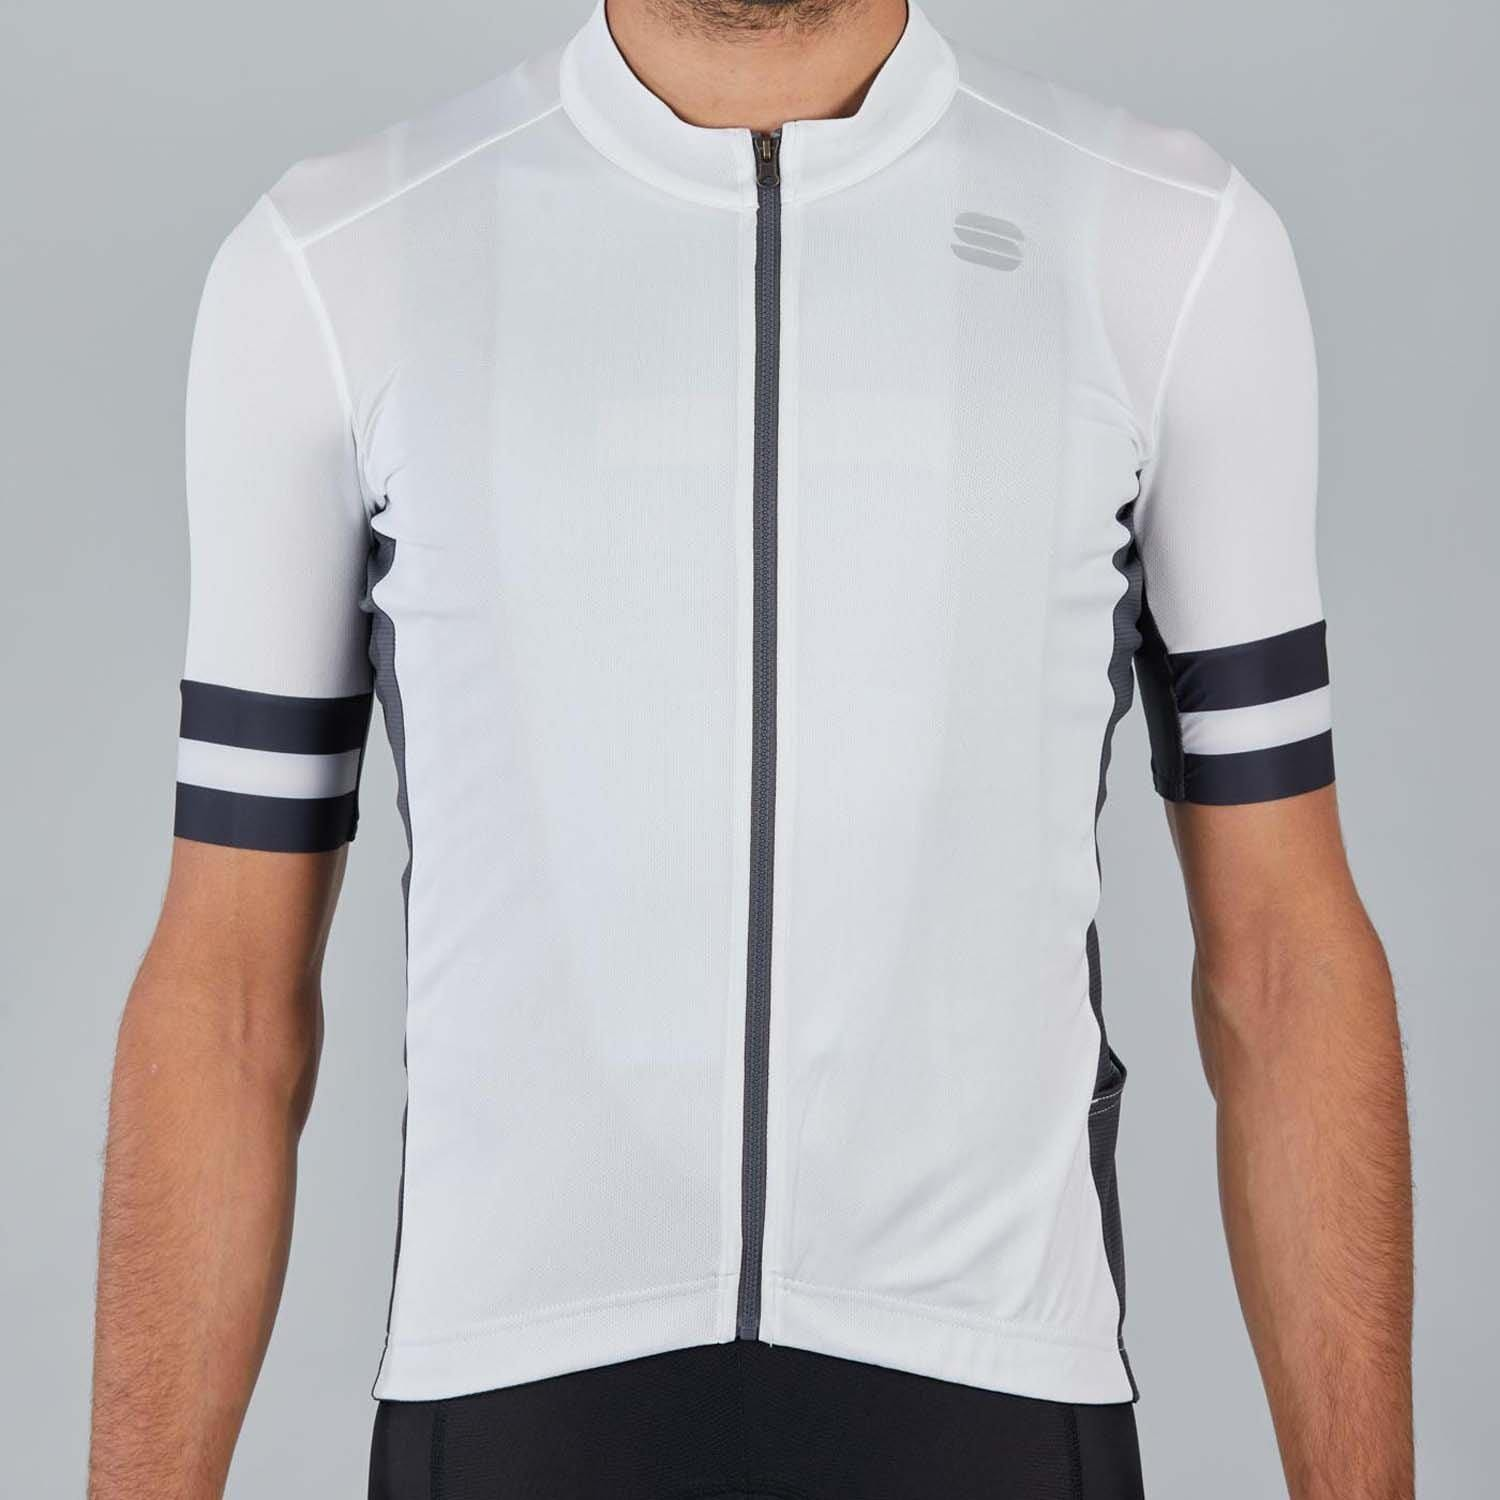 Sportful-Sportful Kite Jersey-White-XS-SF200151011-saddleback-elite-performance-cycling